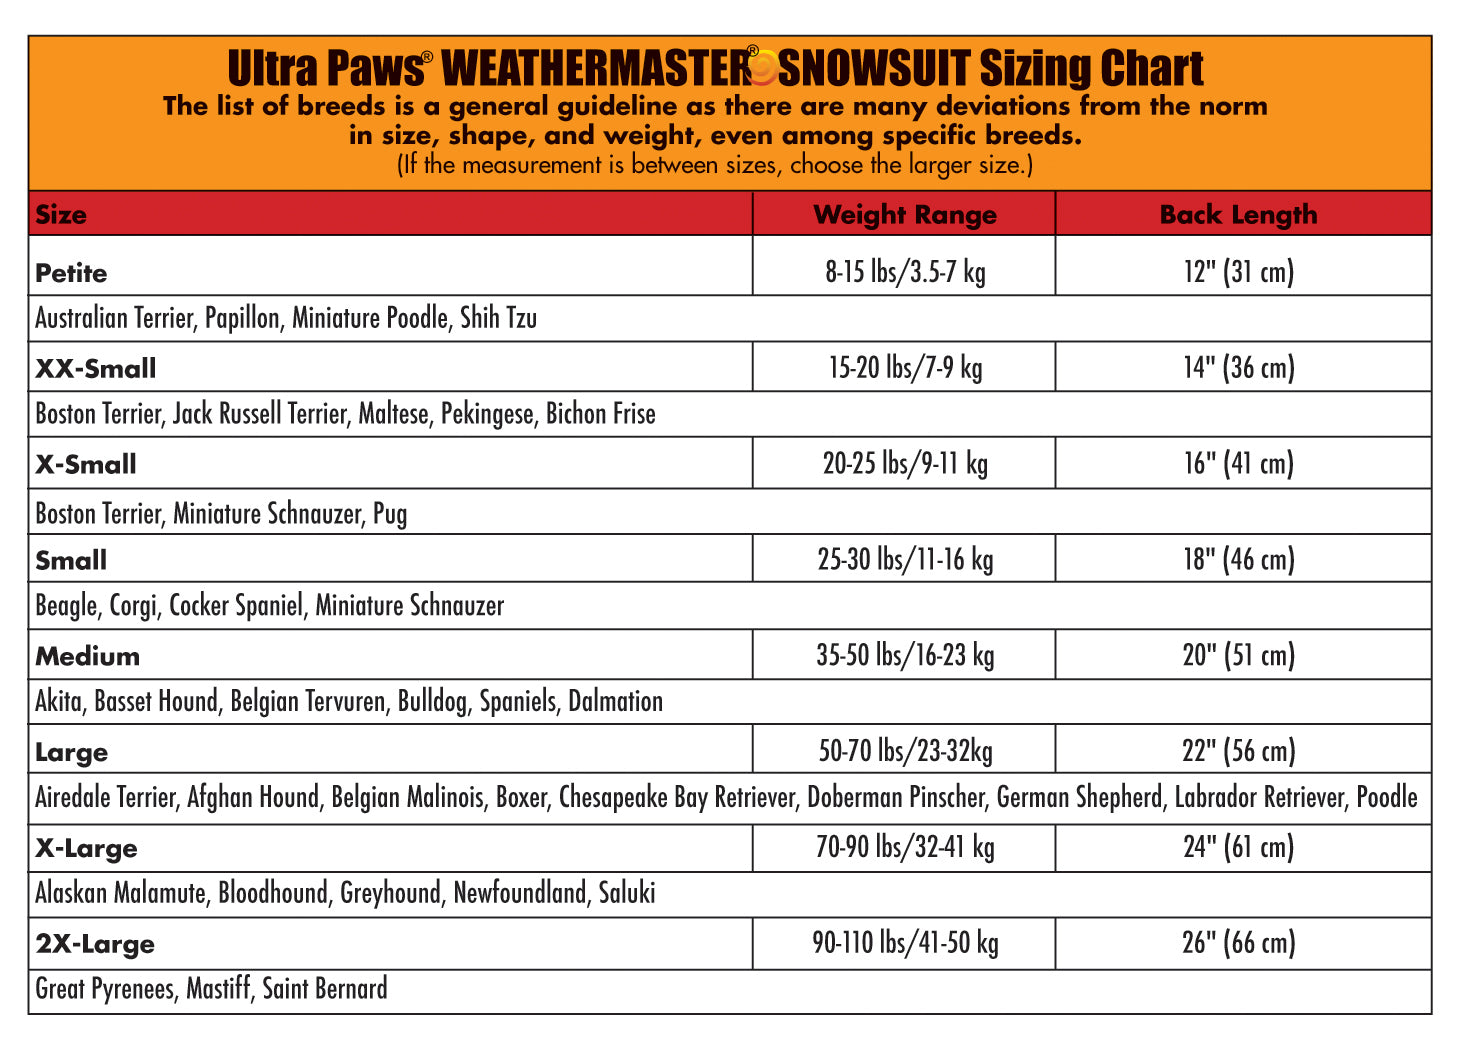 weathermastersnowsuit1-0617.jpg